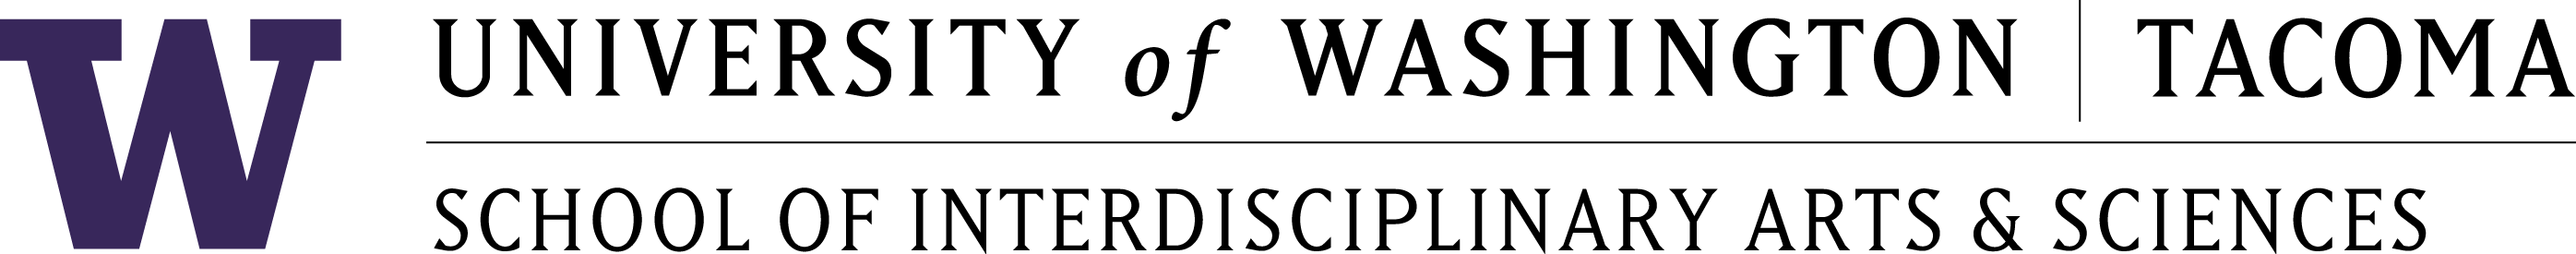 logo for the School of Interdisciplinary Arts and Sciences at UW Tacoma